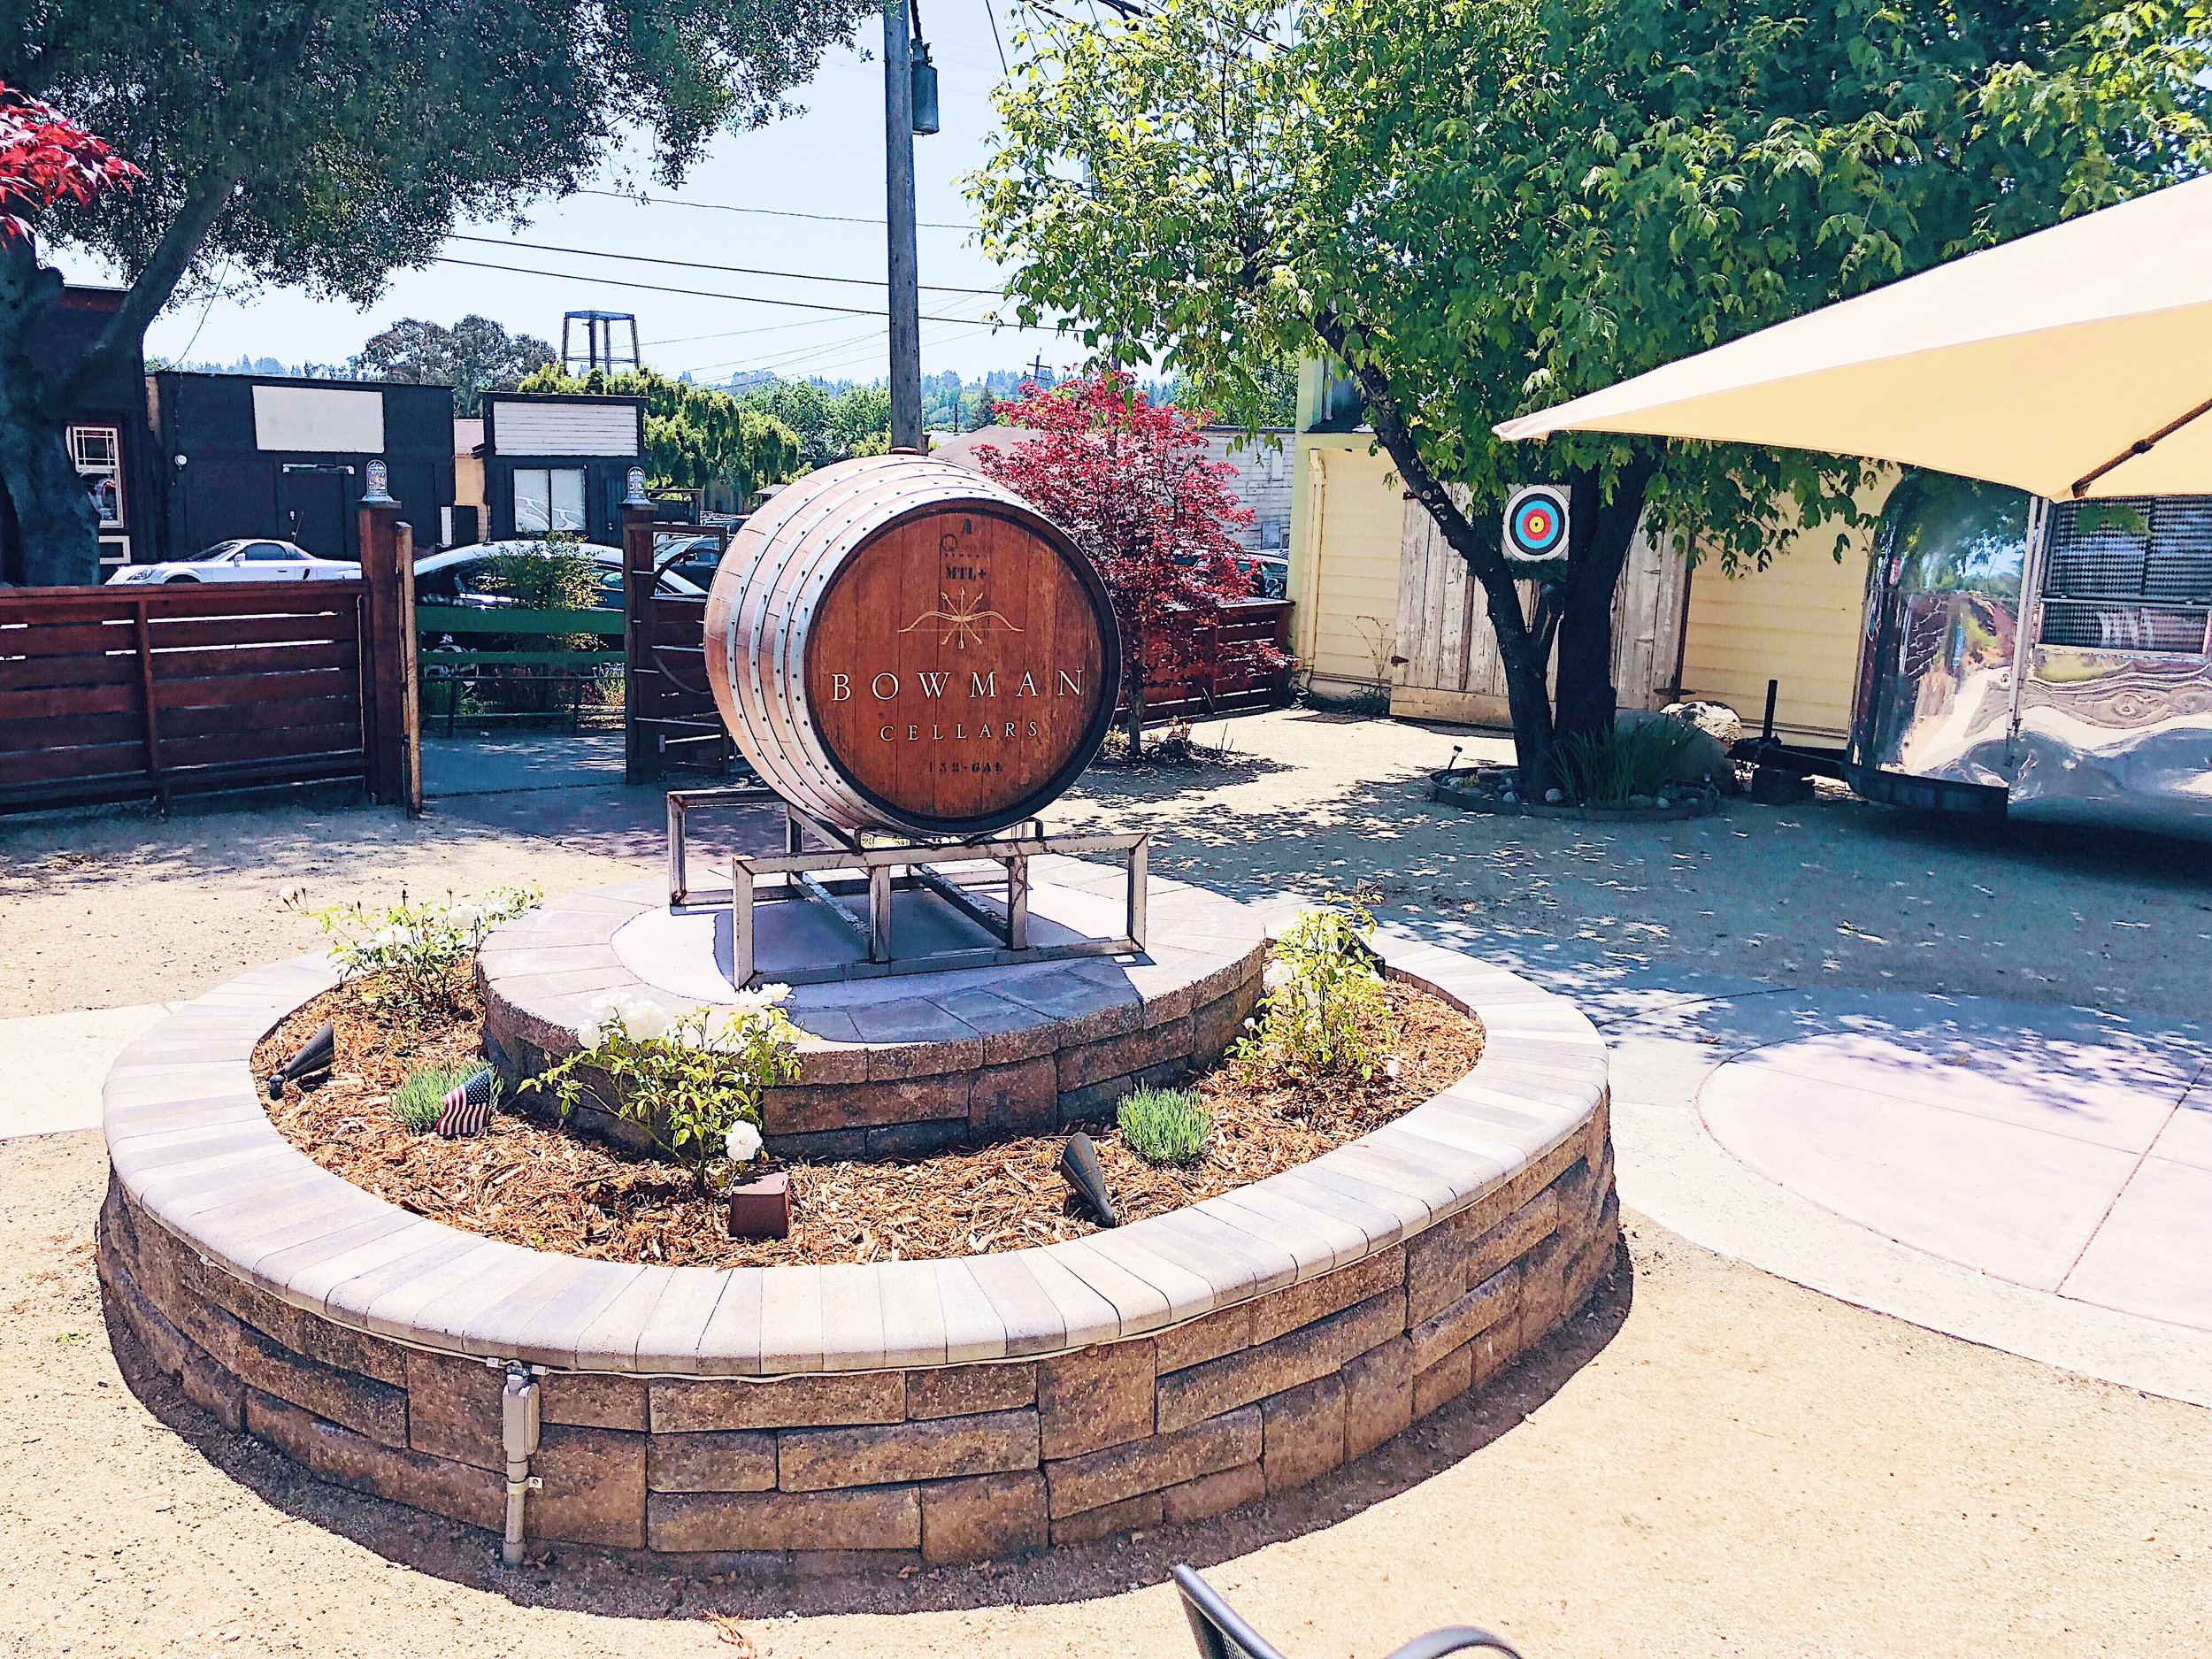 Bowman Cellars Graton Outdoor